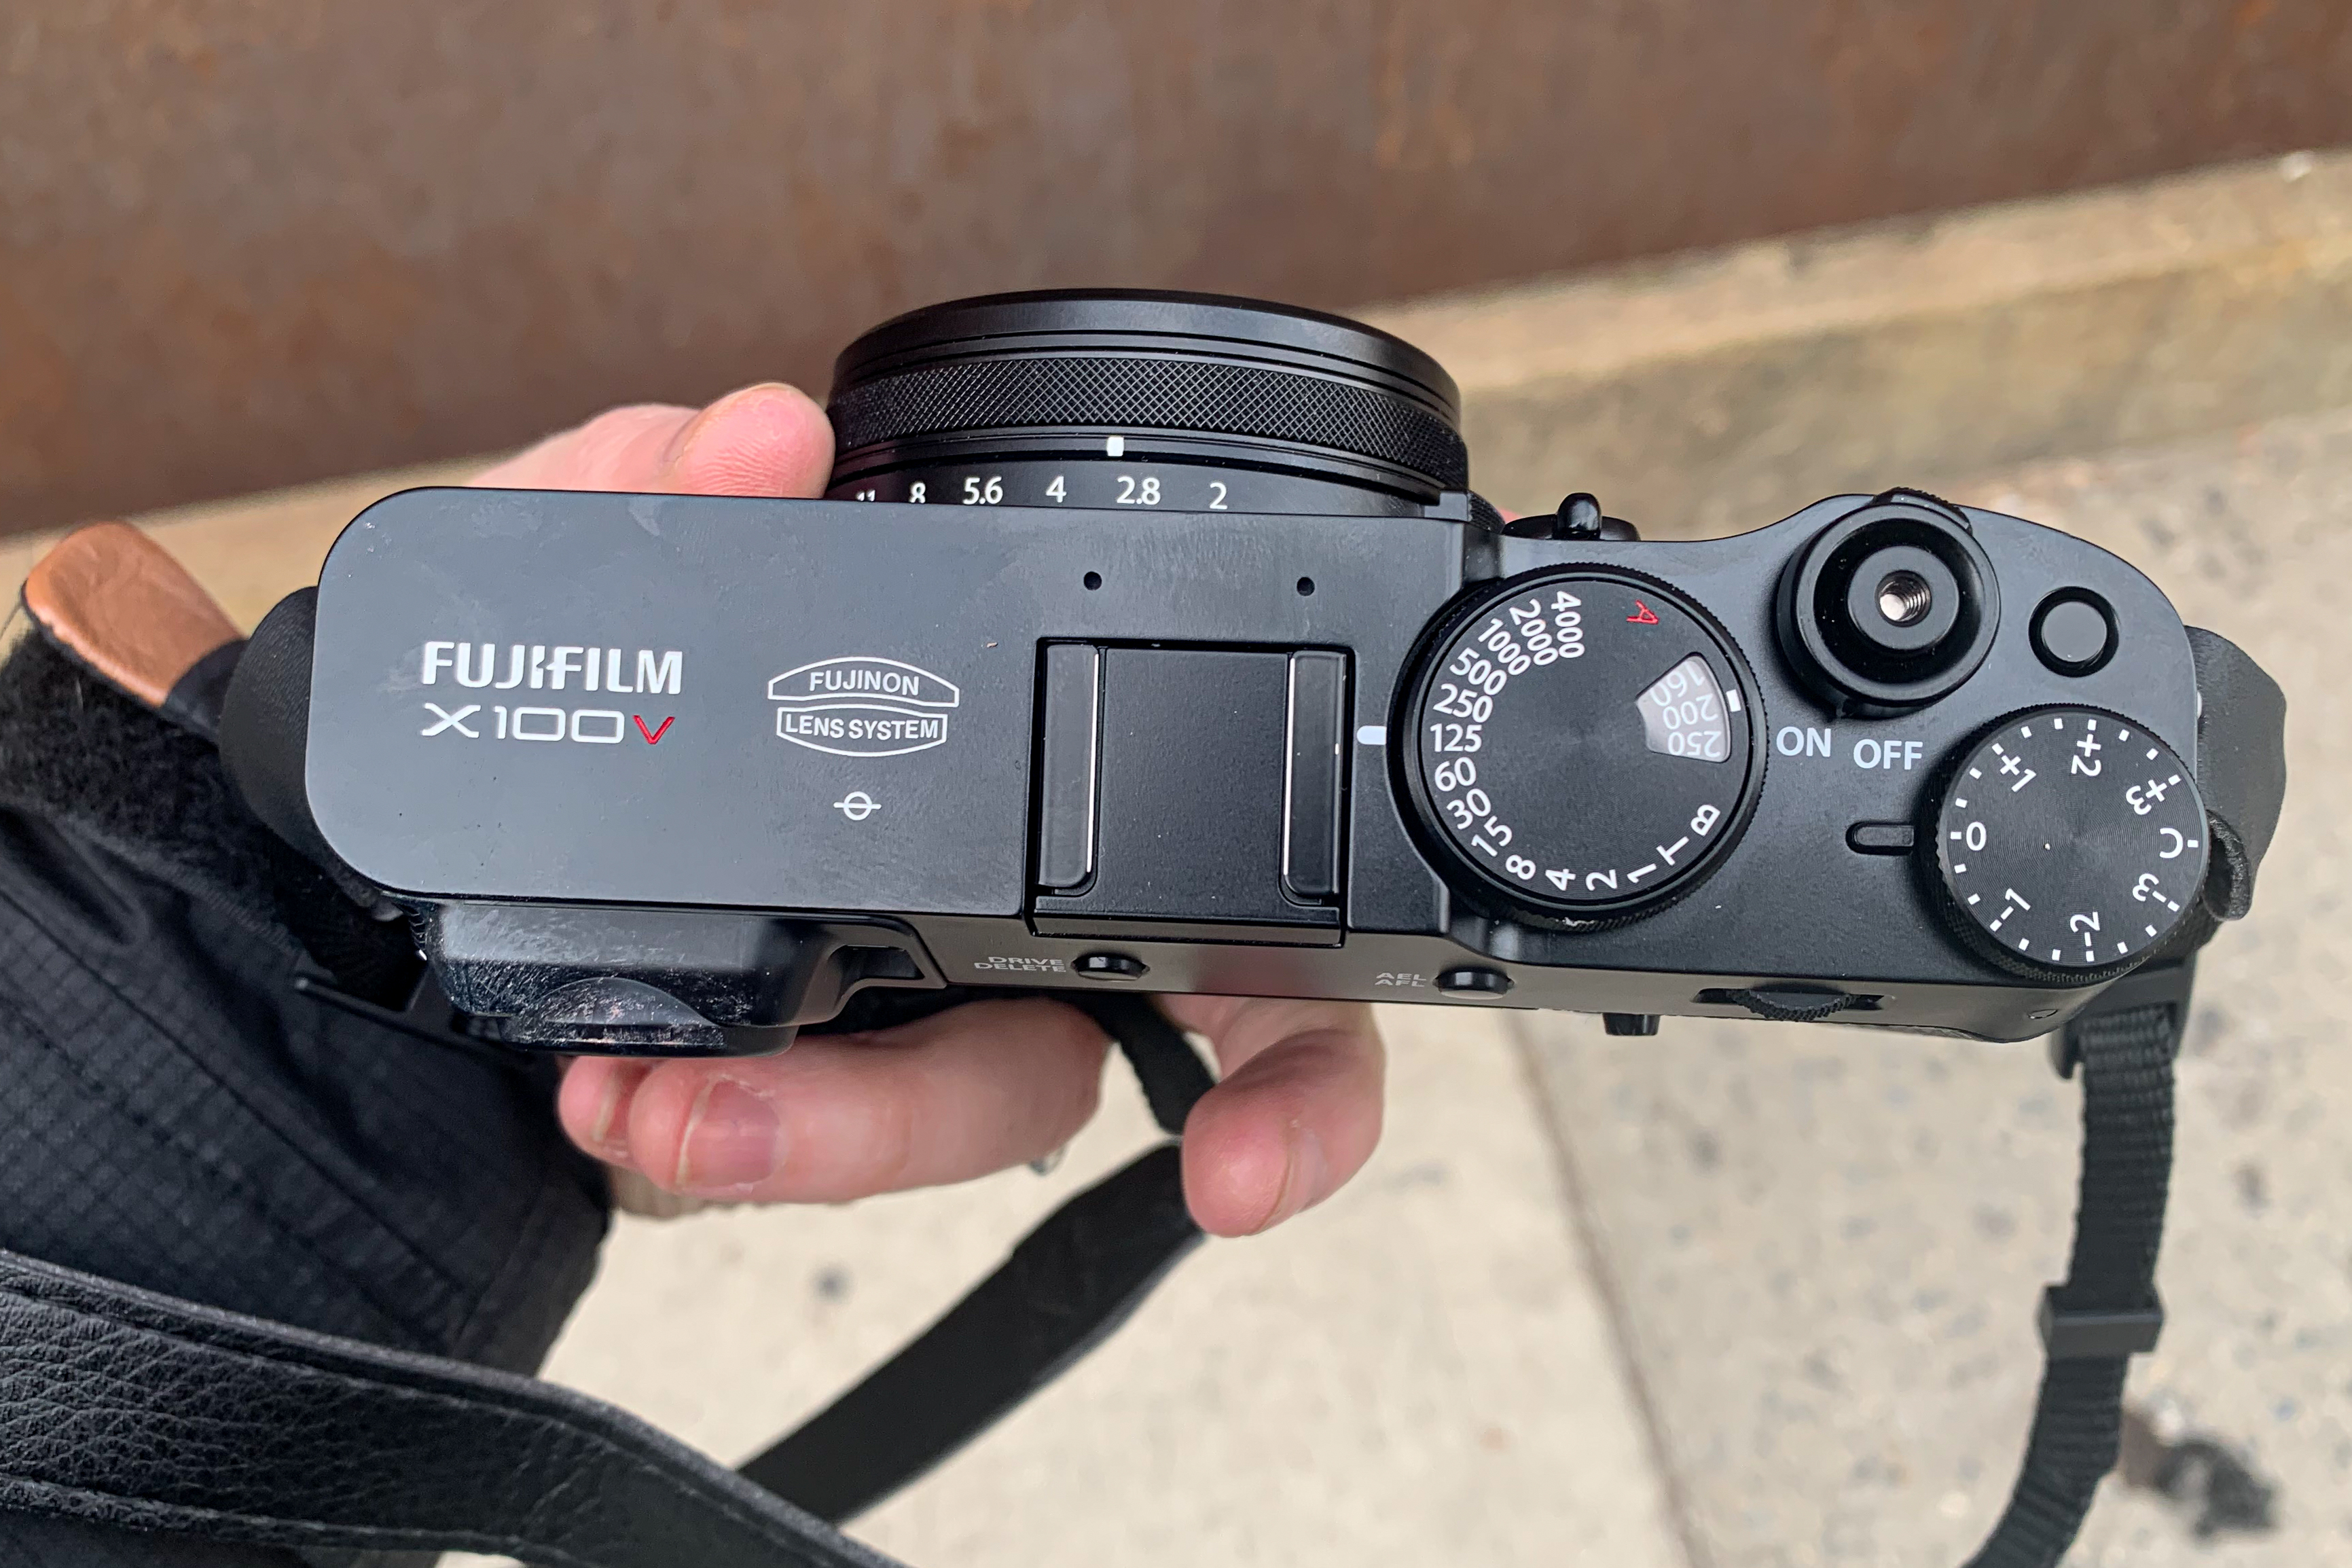 Fujifilm's X100V improves on one of the best all-around compact cameras